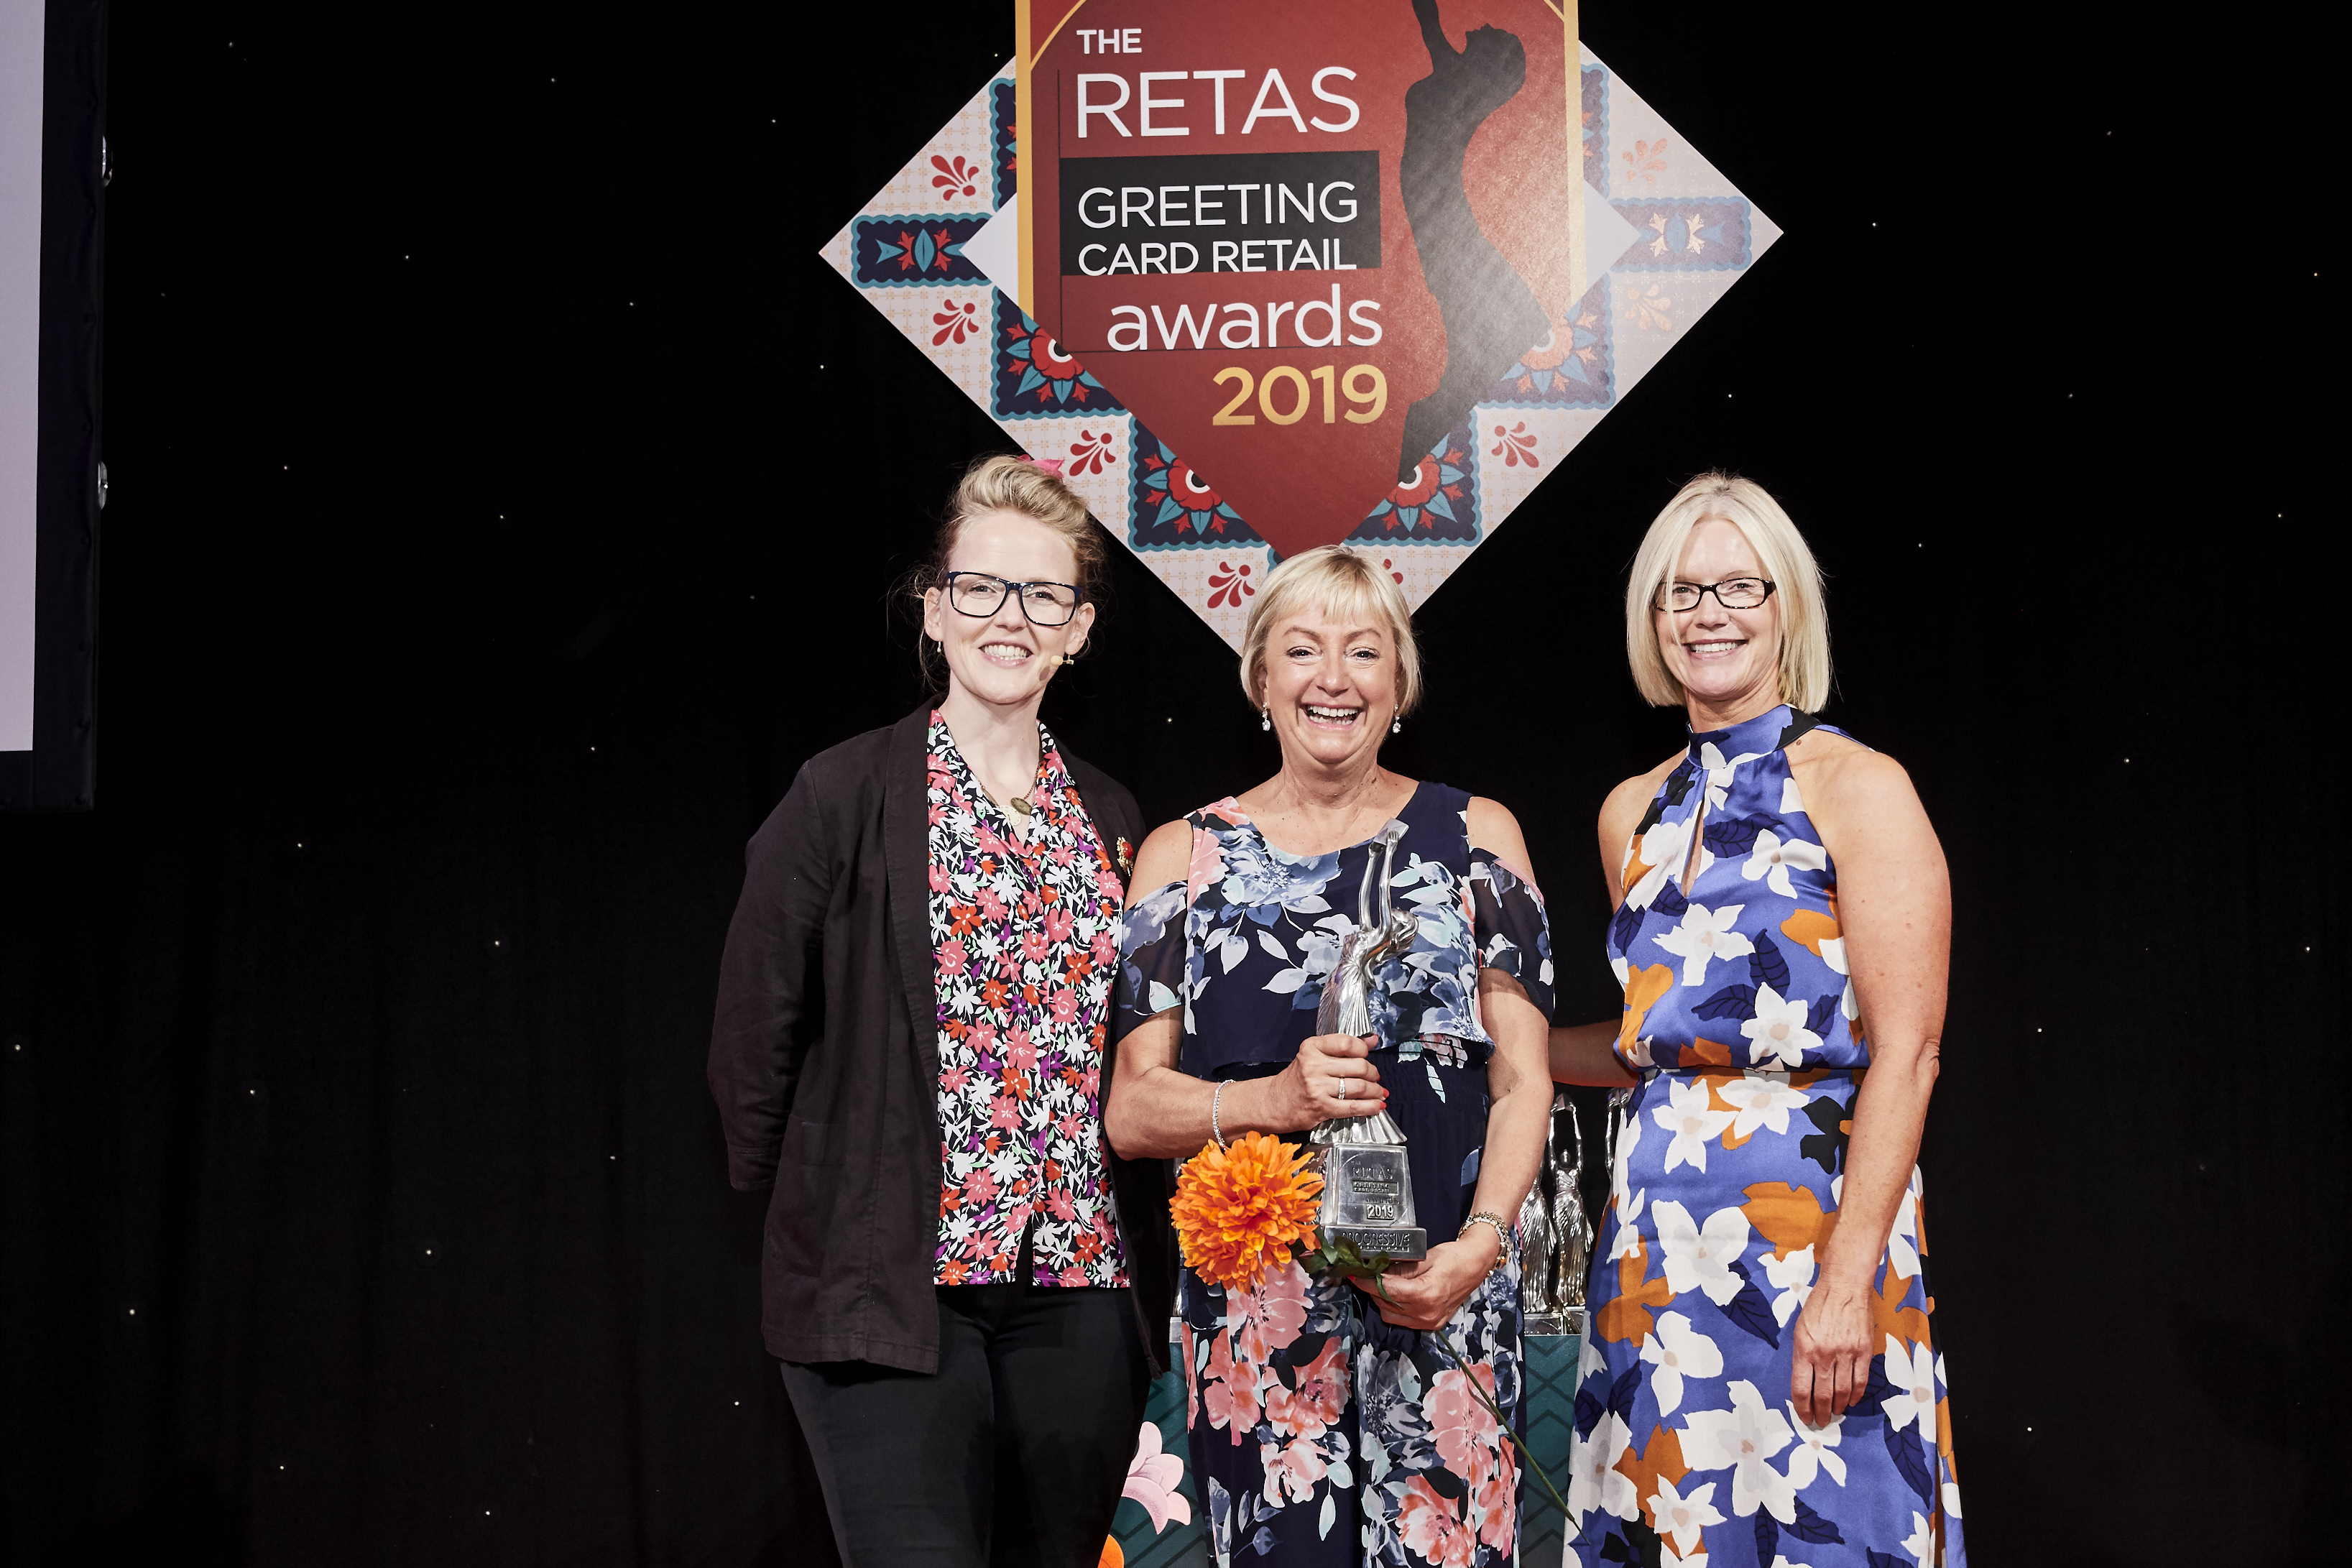 Above: Island Greetings' owner Alison Baker, accepts her Retas award from Alison Butterworth, managing director of Nigel Quiney, which together with Glick sponsored this award category.